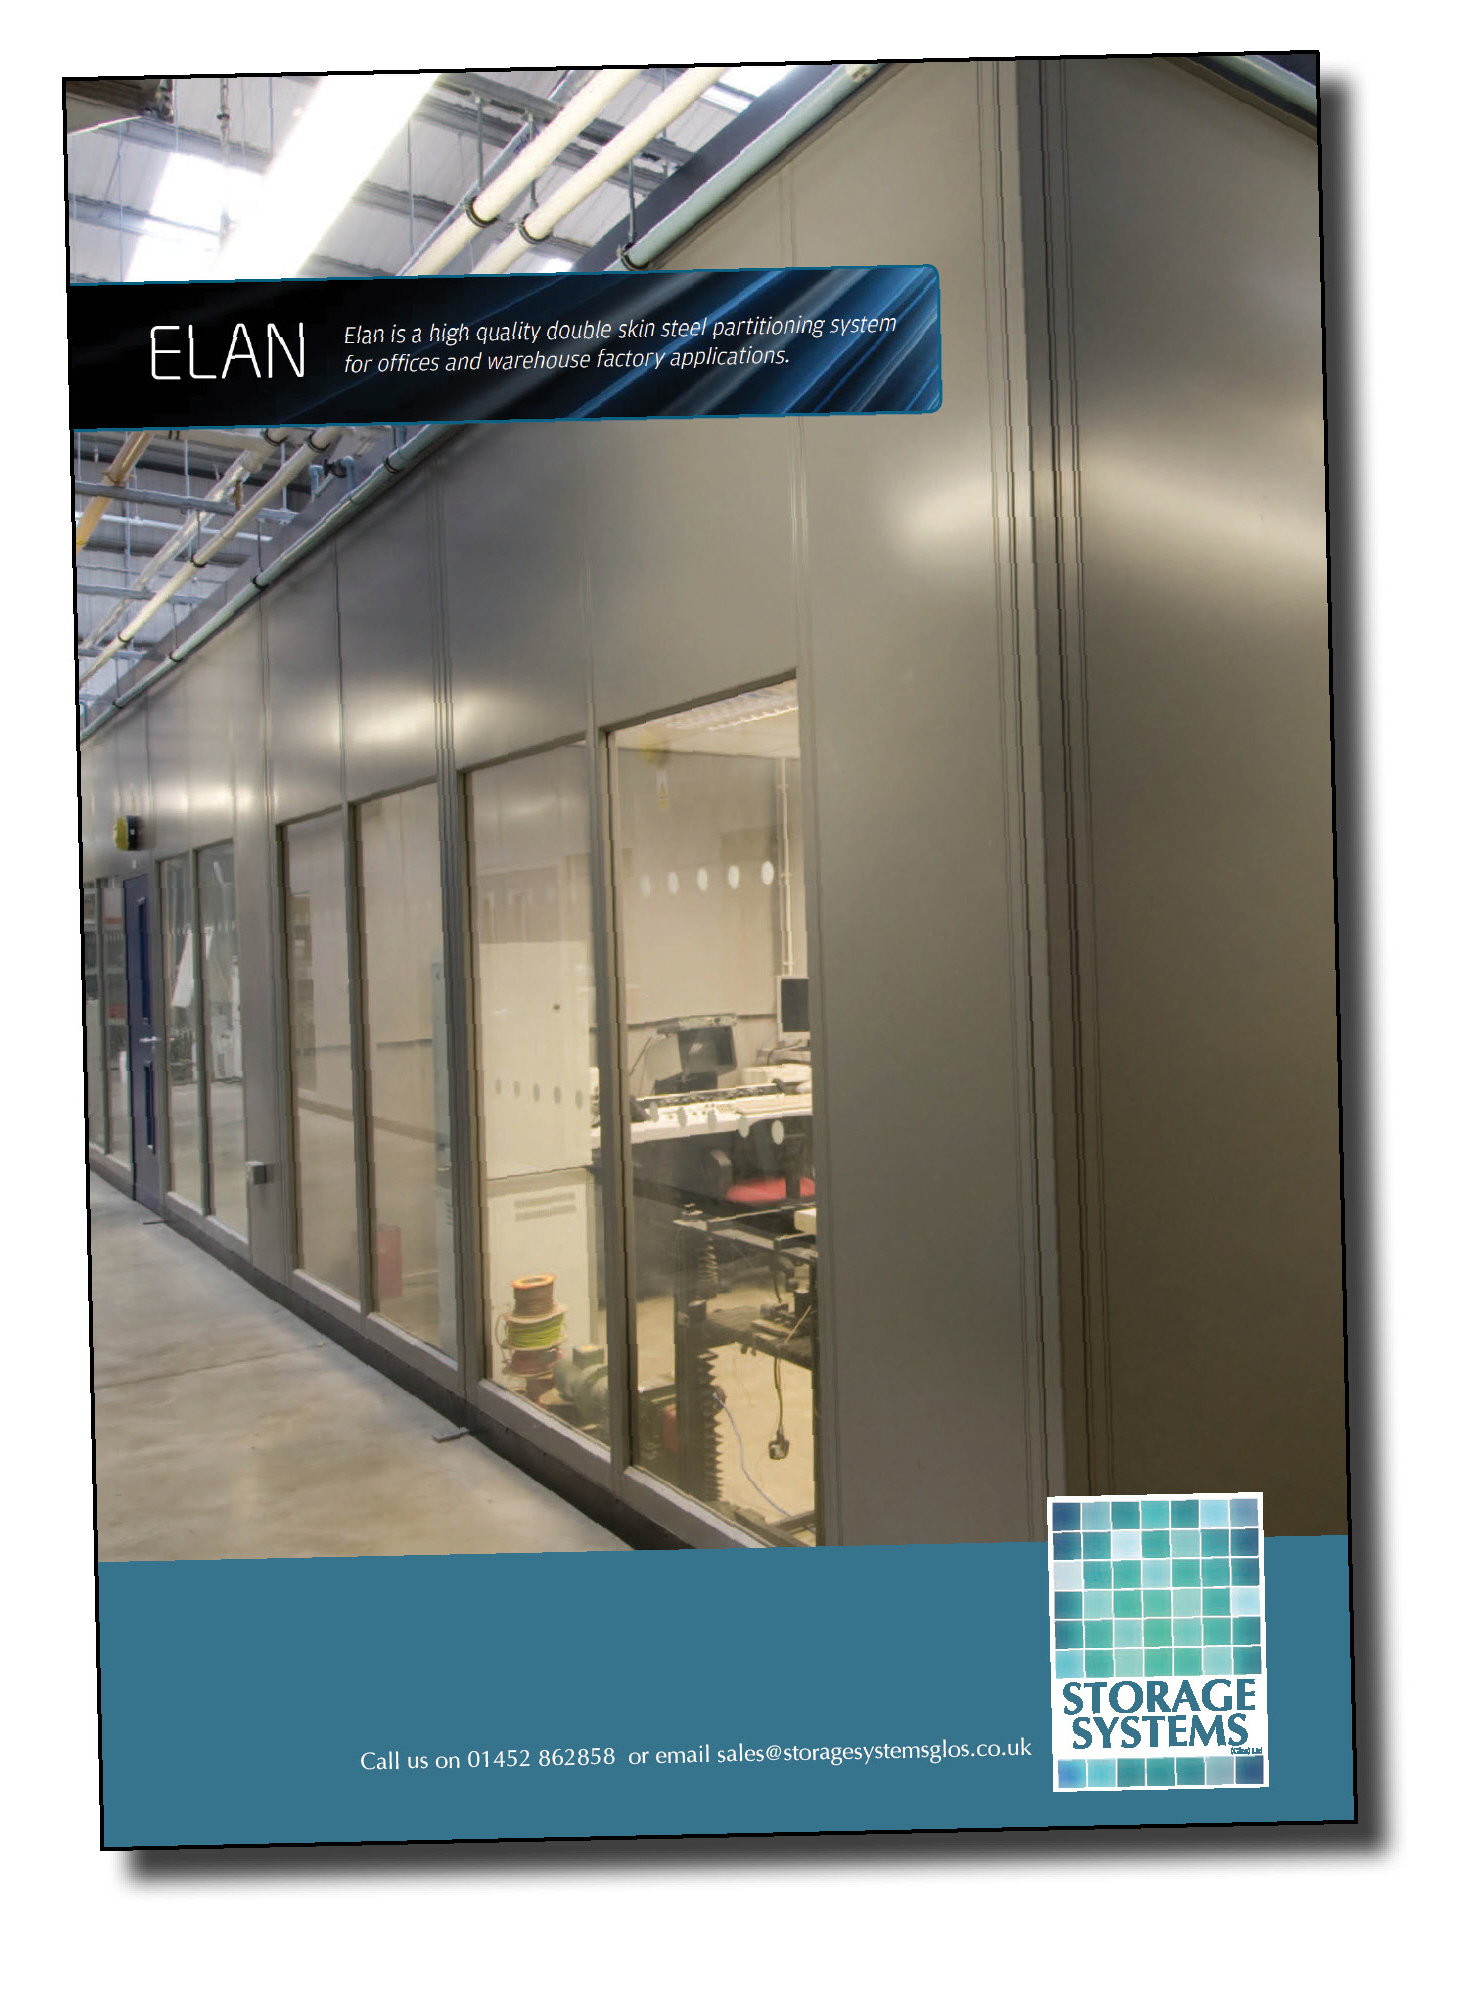 Click to download Gloucestershire warehouse and factory partitioning supplier Storage Systems' brochure